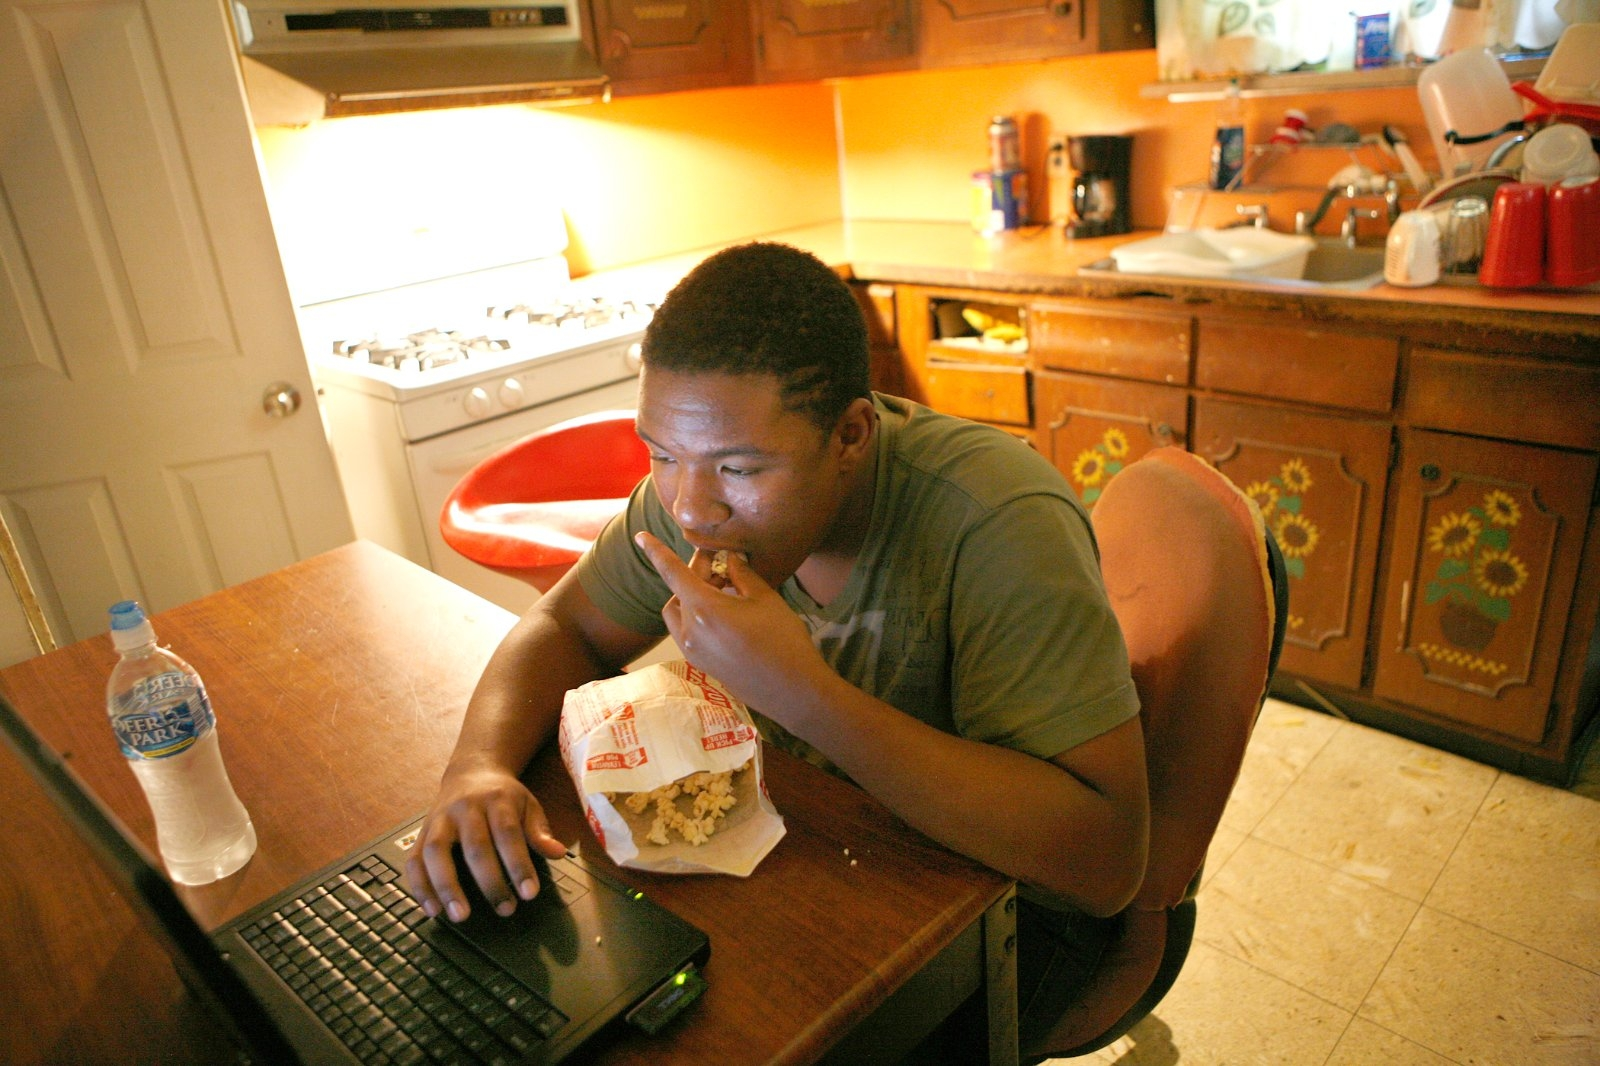 A teenage boy eats popcorn as he works on a laptop.